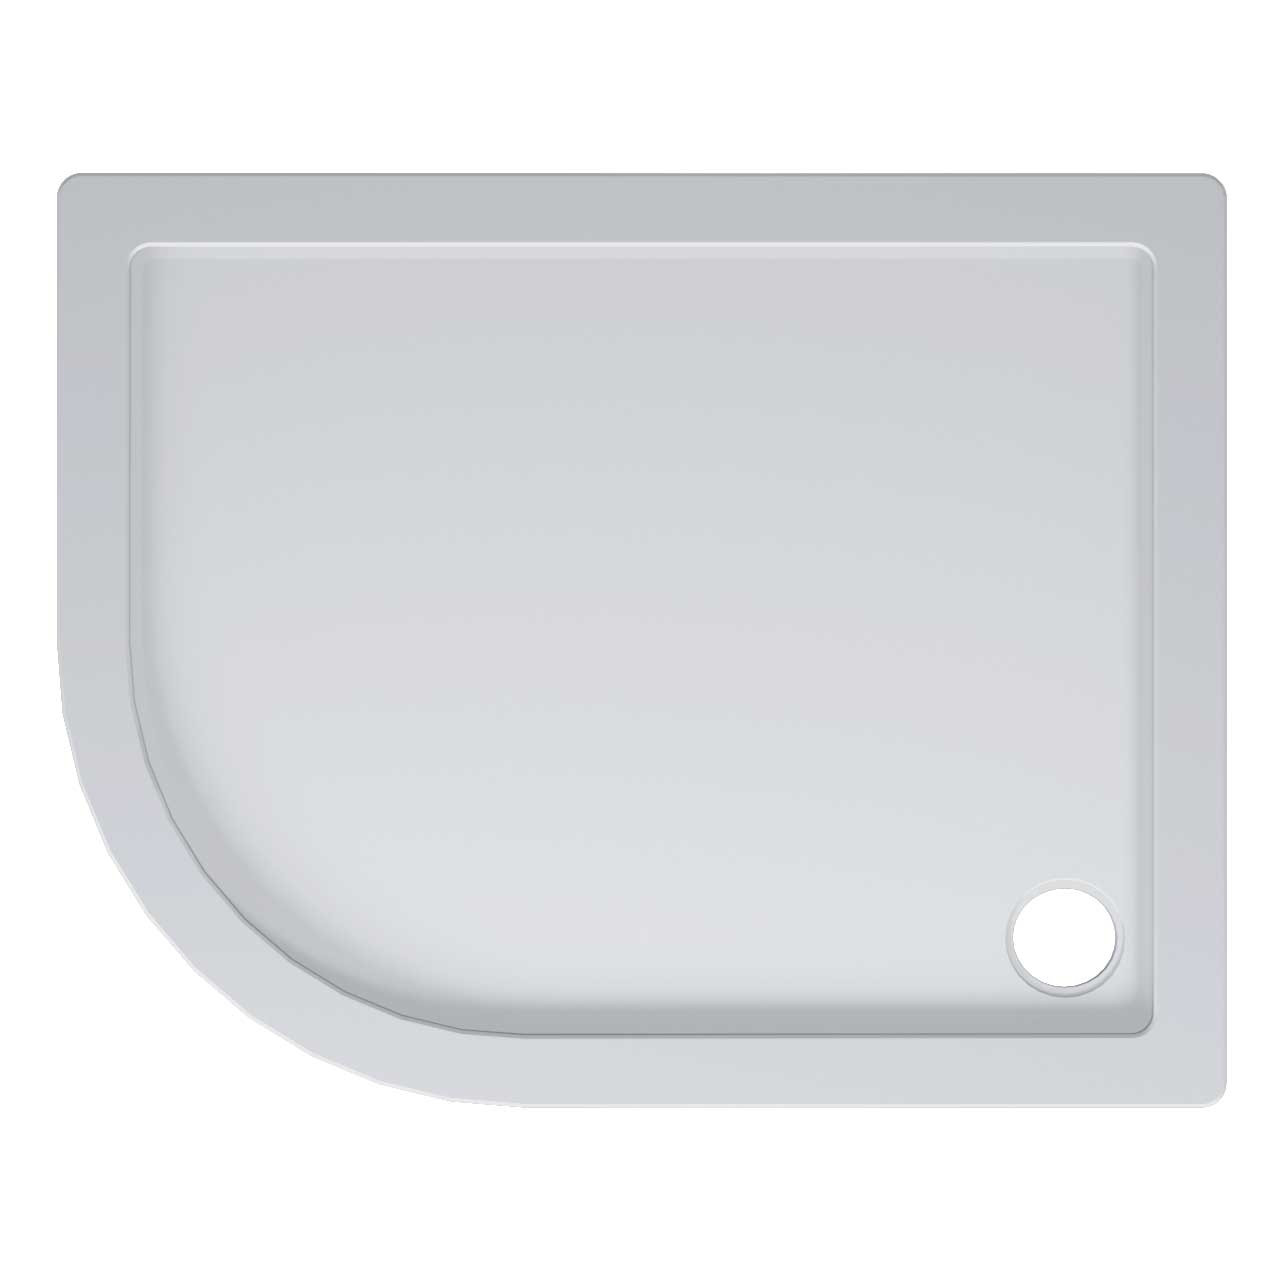 40mm Pearlstone 1000 x 800 Left Hand Offset Quadrant Shower Tray & Plinth Top View